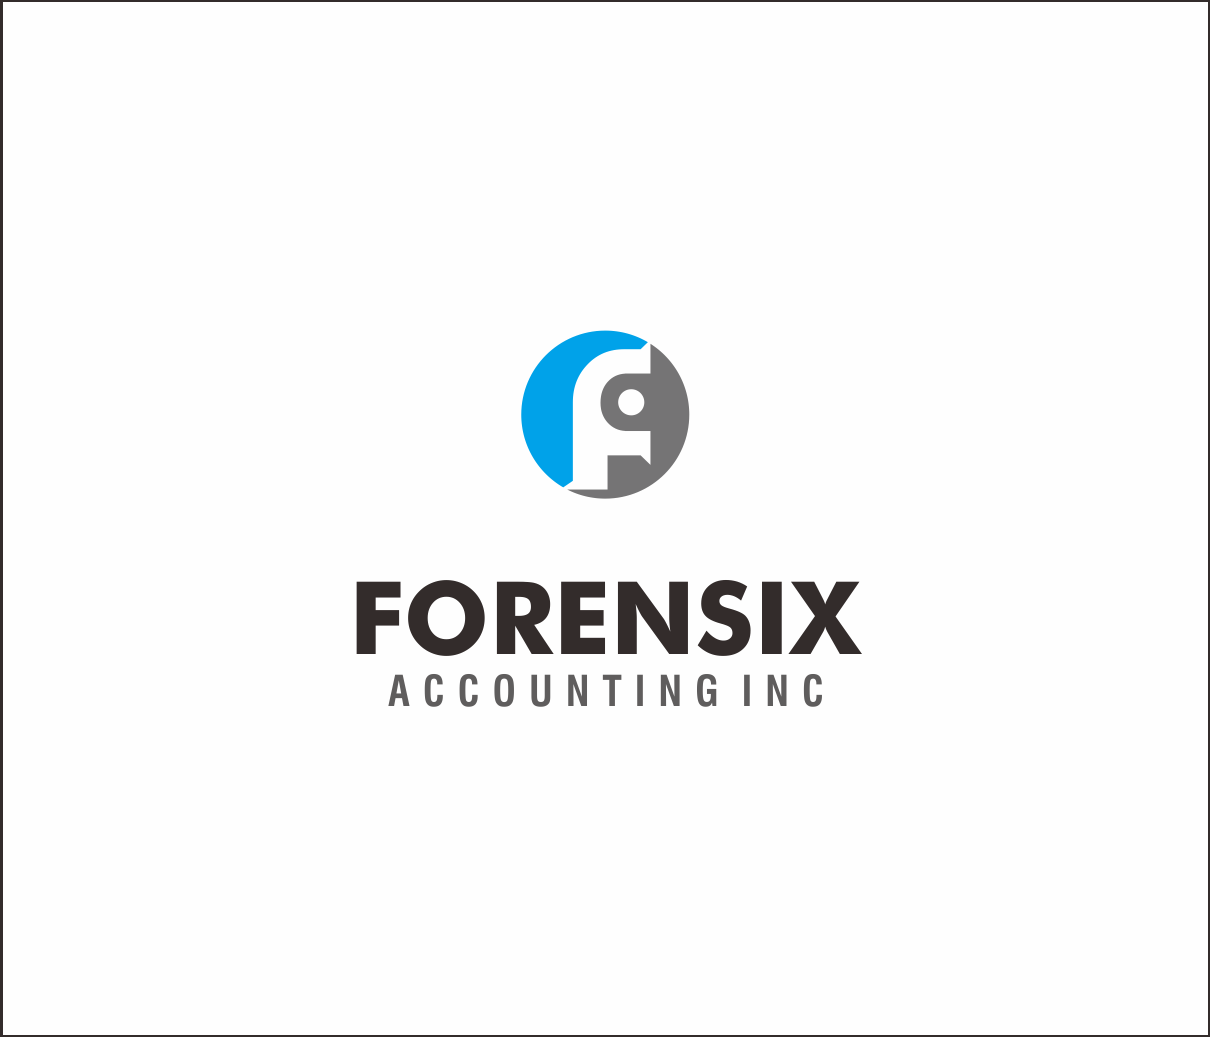 Logo Design by Armada Jamaluddin - Entry No. 55 in the Logo Design Contest FORENSIX ACCOUNTING INC. Logo Design.